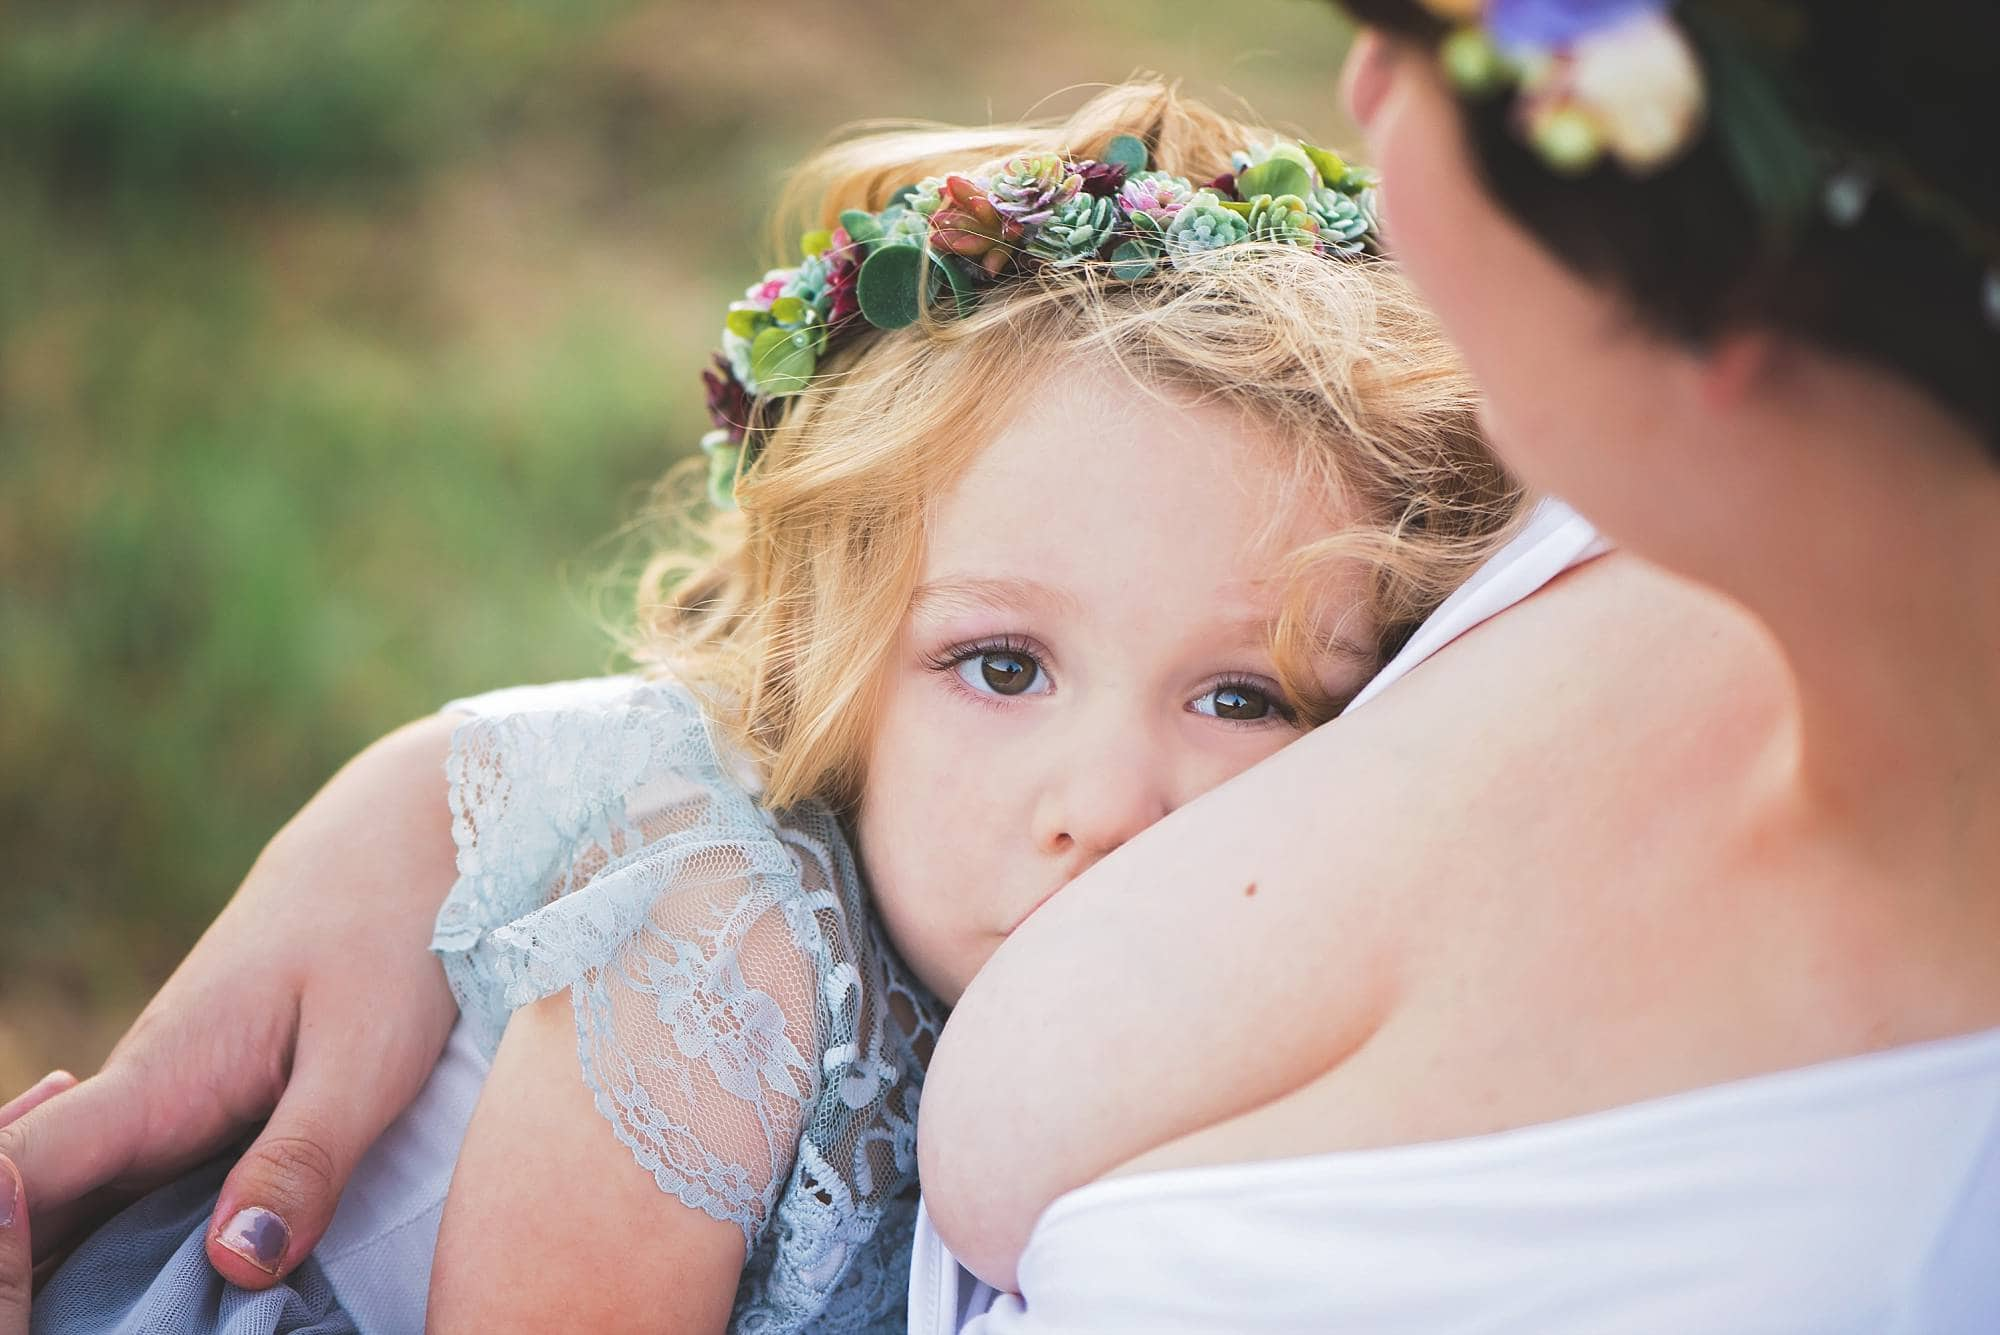 Closeup of breastfeeding toddler girl with flower crown